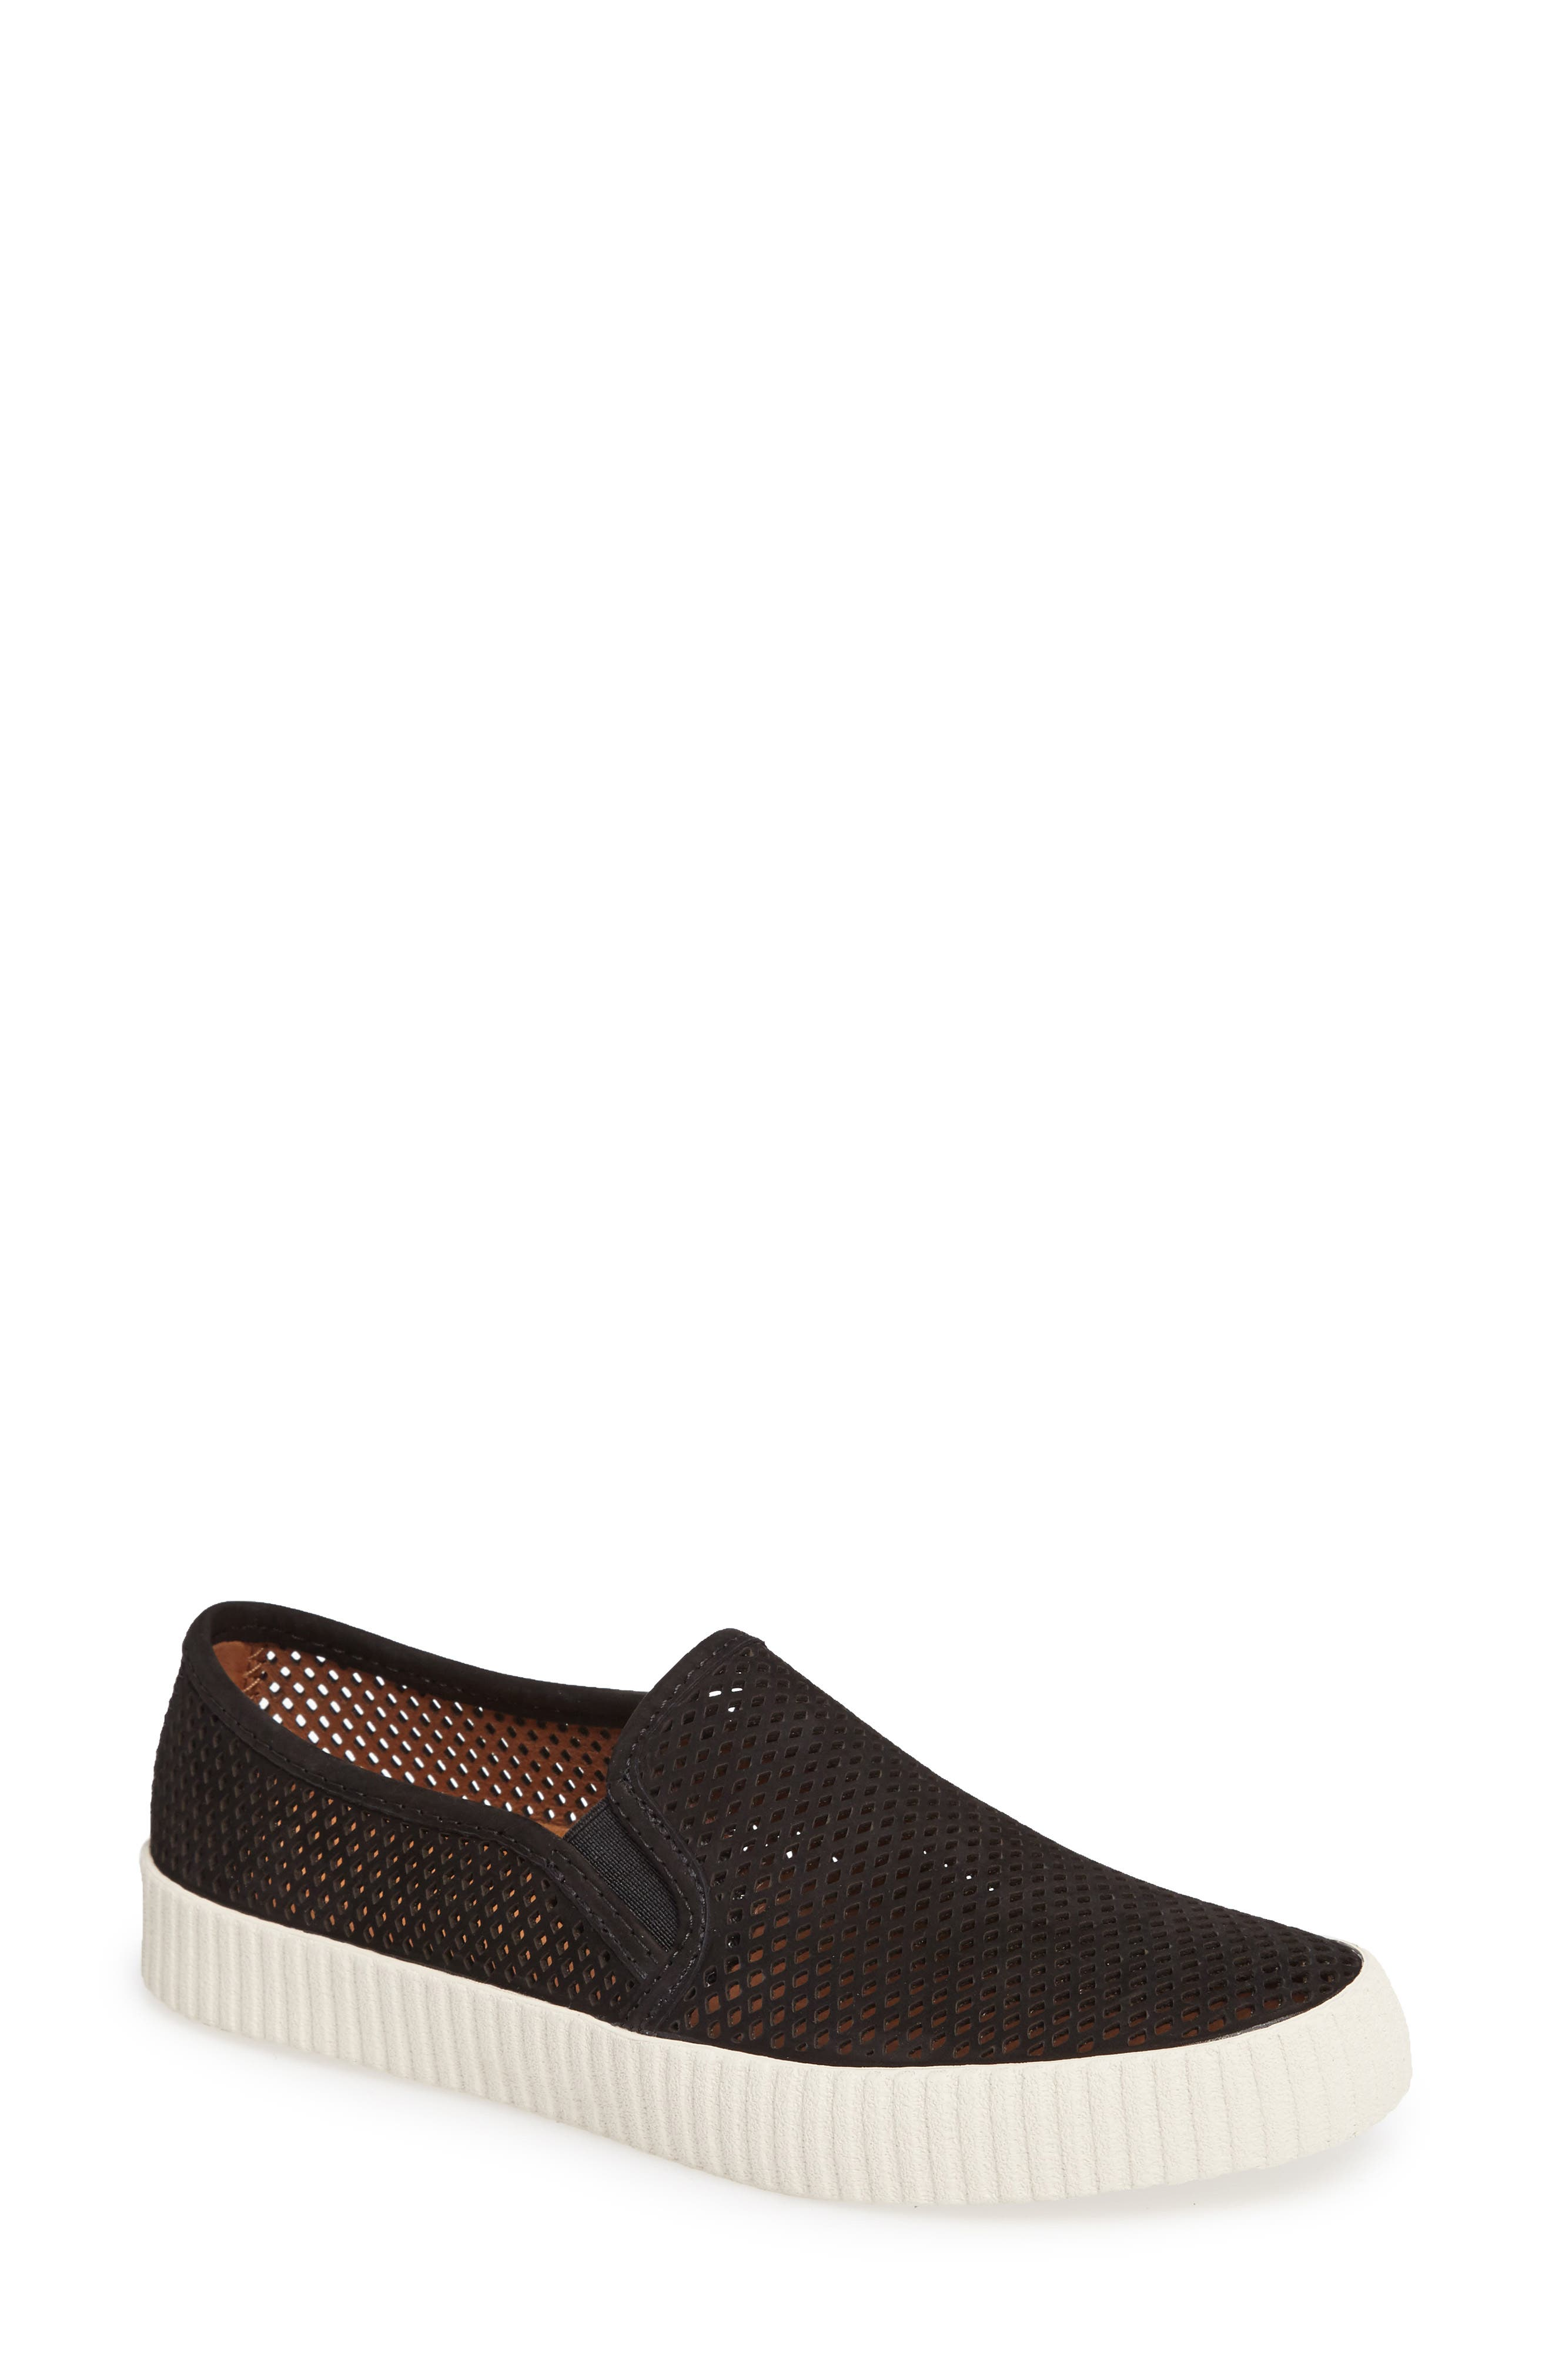 Frye Camille Perforated Slip-On Sneaker (Women)